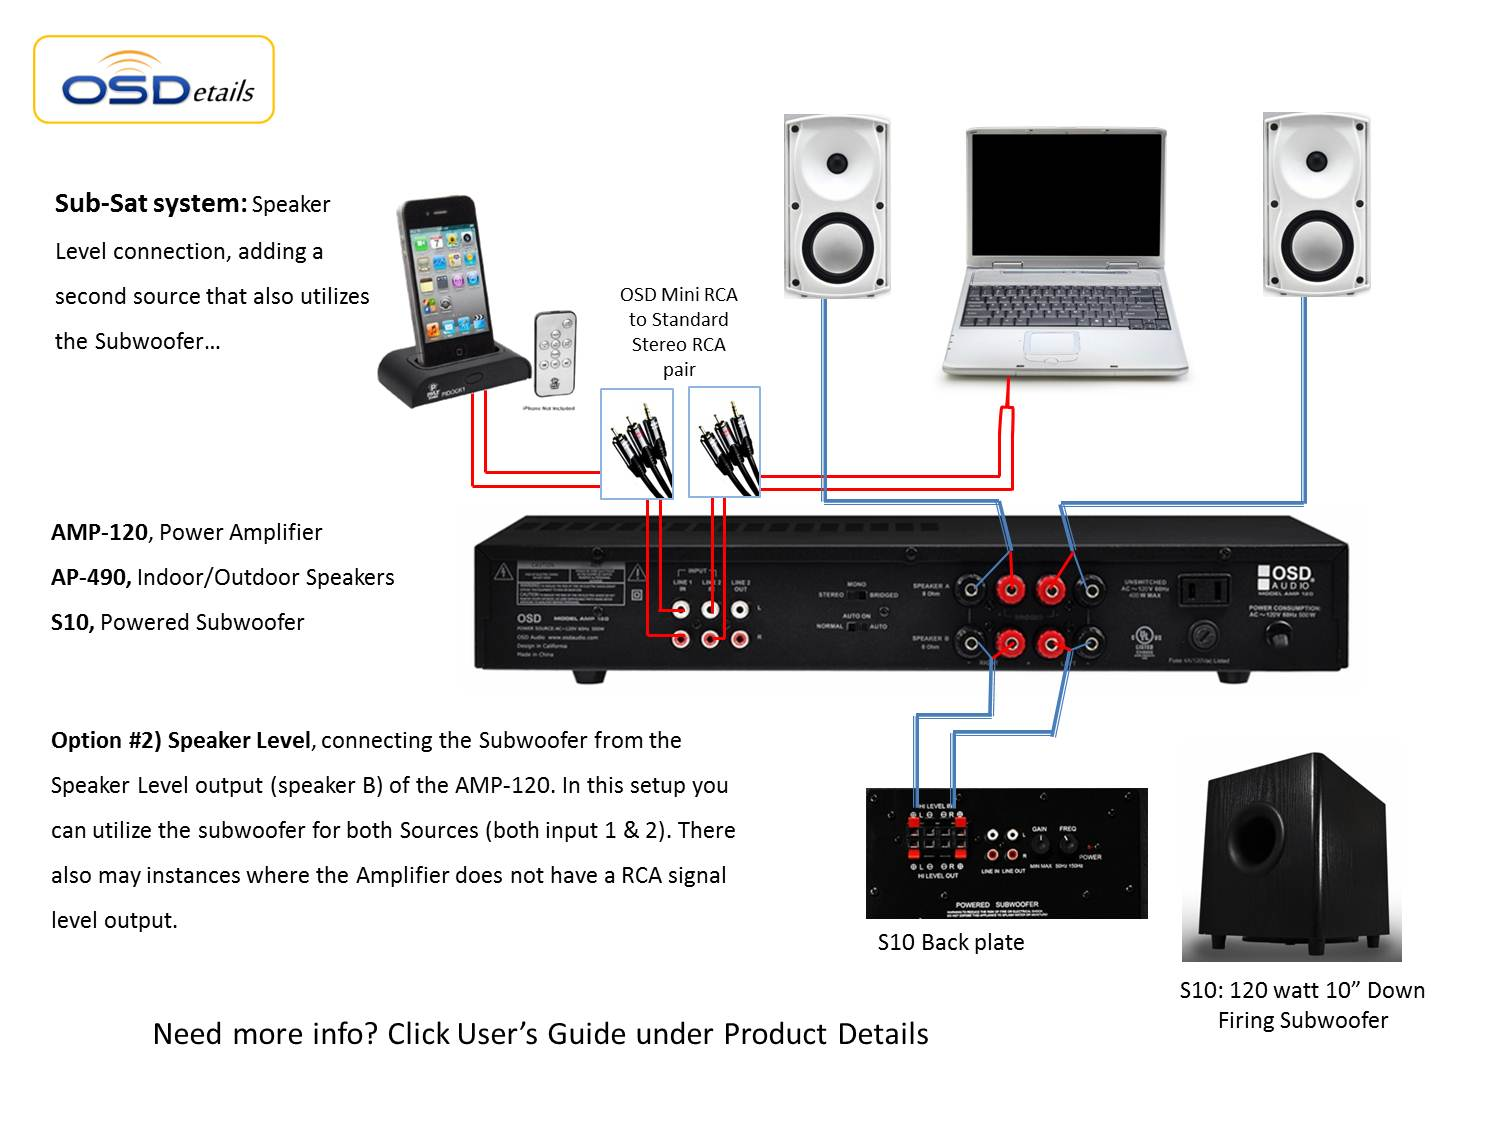 Best Way To Wire Subwoofers - Dolgular.com